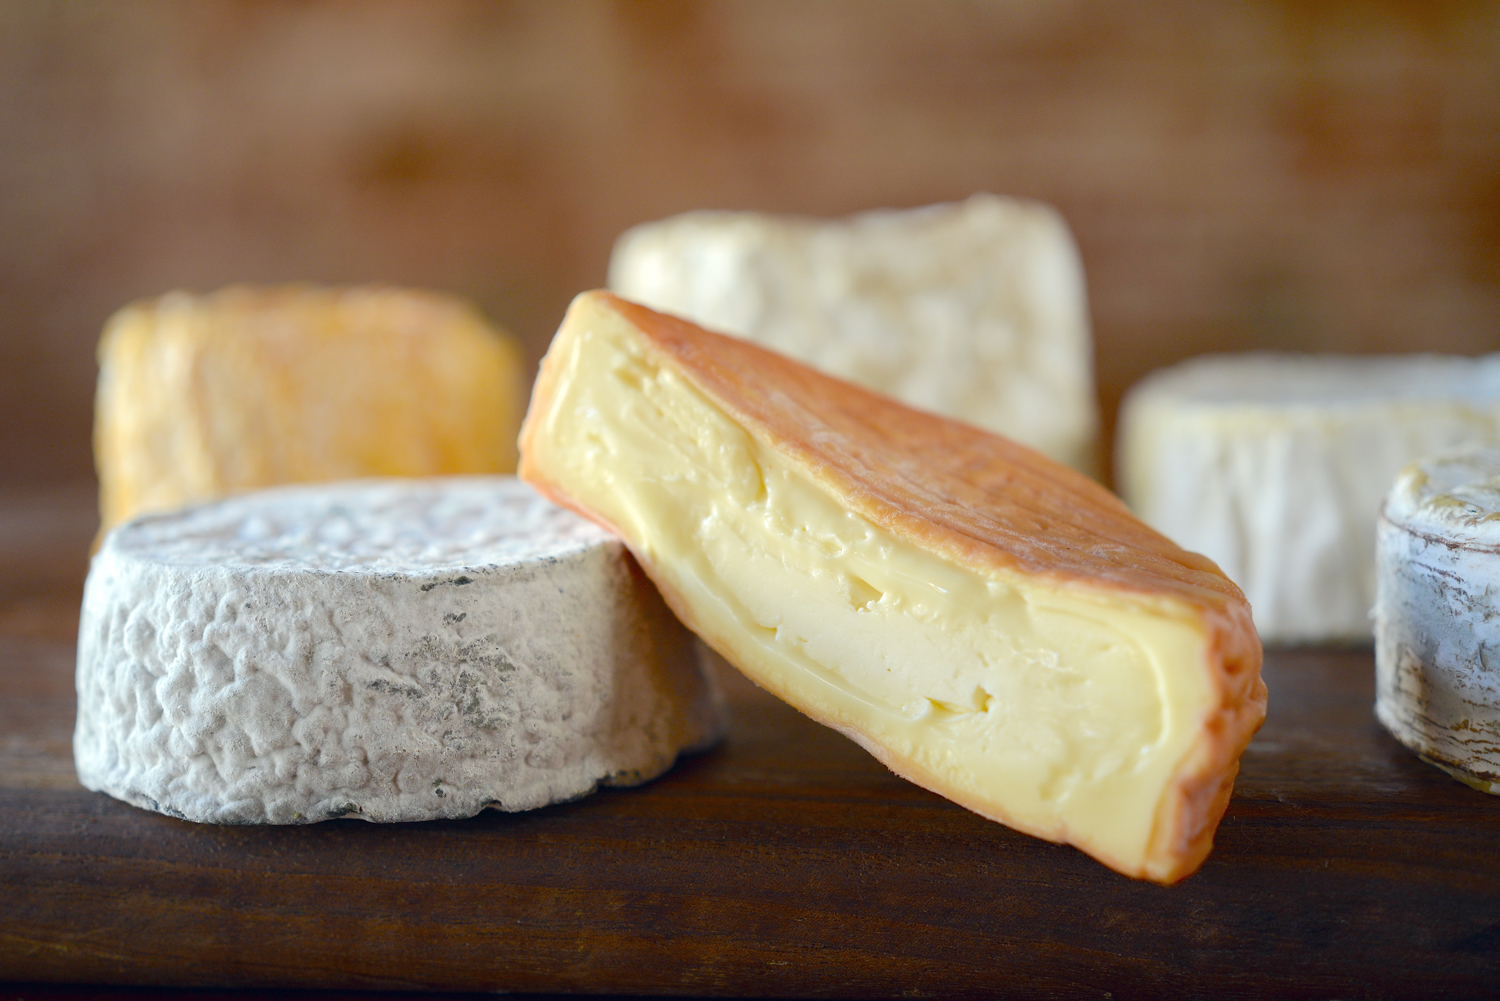 cheese counter.artisan market. - Come taste our new finds and old standards. Take home just the right complement from our market.